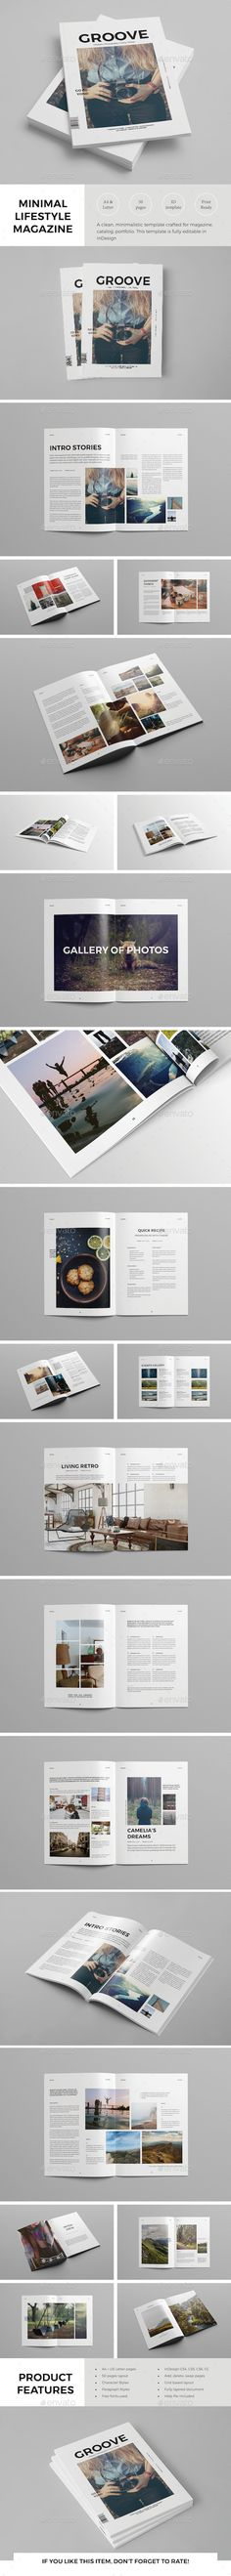 Simple Lifestyle Magazine Template InDesign INDD. Download here: http://graphicriver.net/item/simple-lifestyle-magazine-template/14561657?ref=ksioks